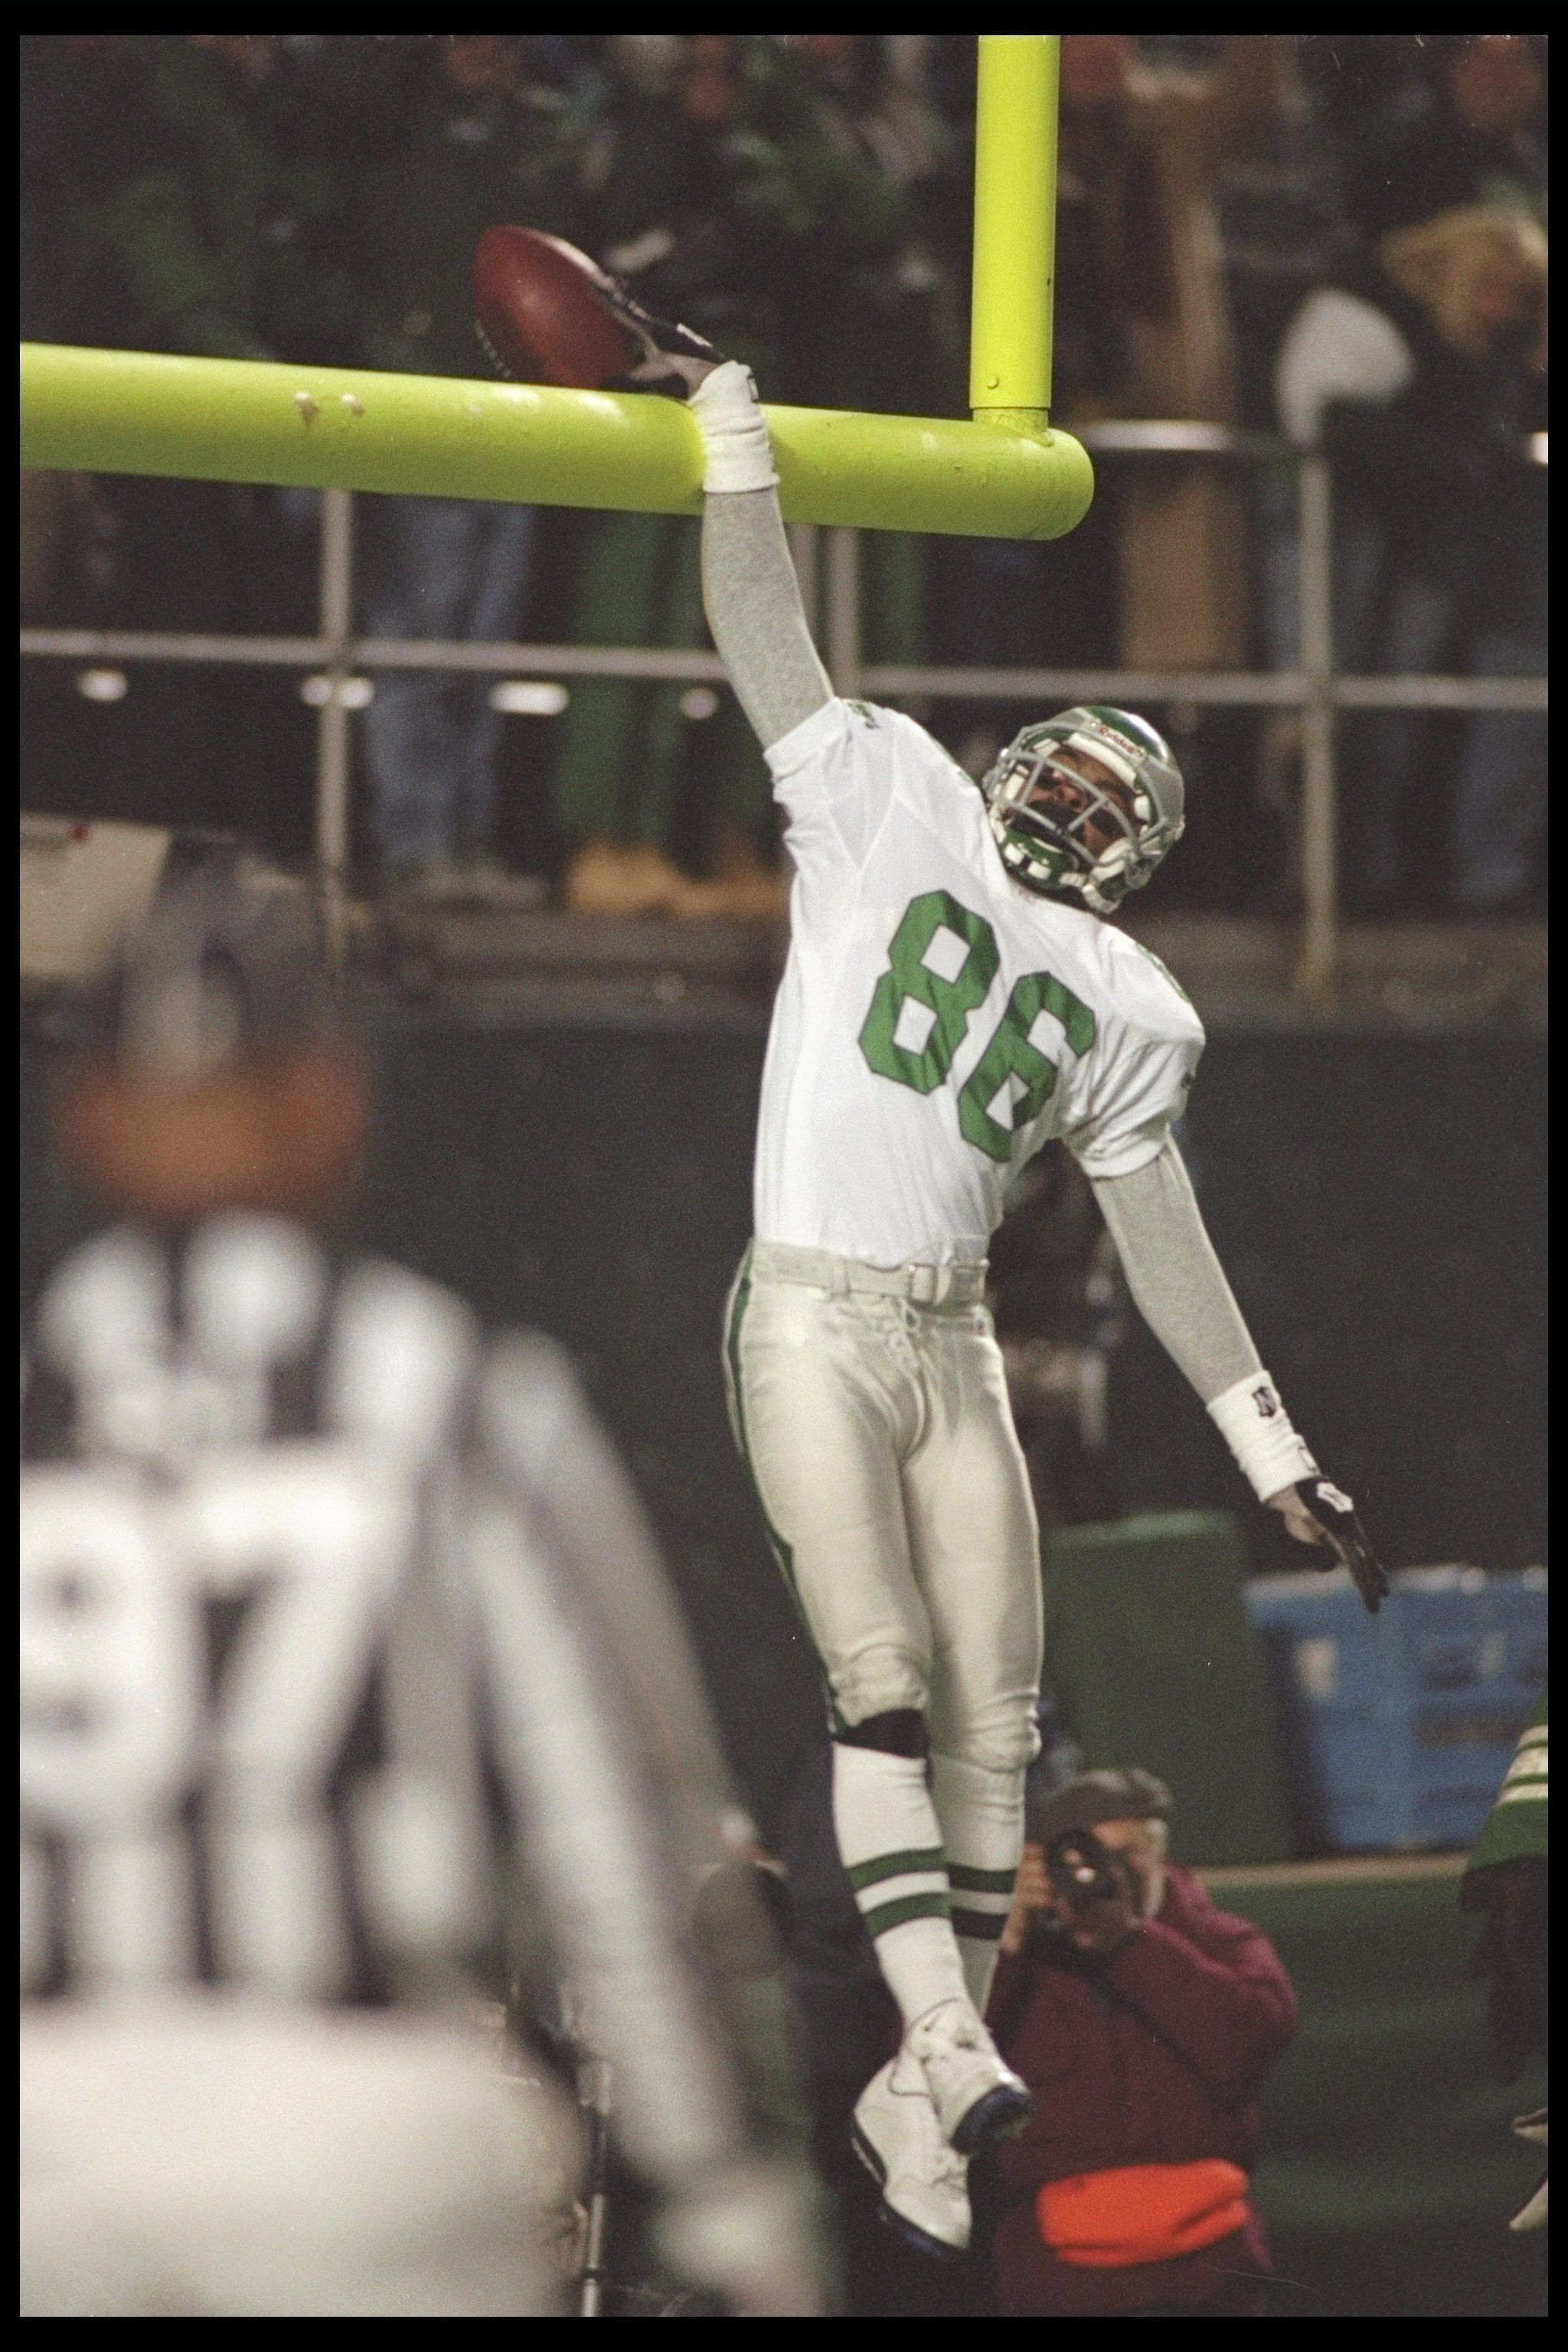 eb1ccd560cf 30 Dec 1995: Wide receiver Fred Barnett of the Philadelphia Eagles  celebrates after scoring a